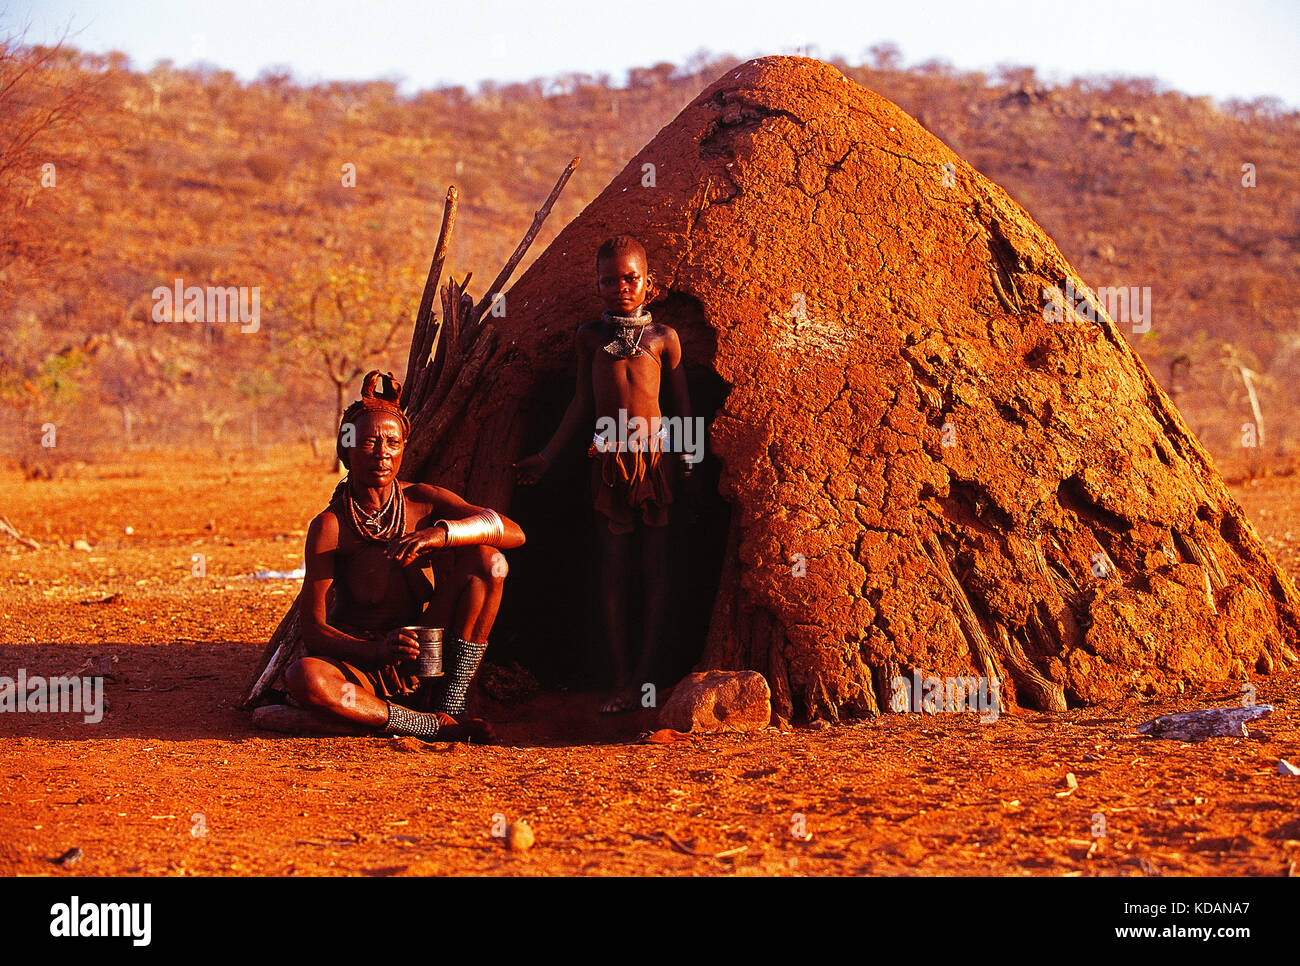 Africa. Namibia. Kunene region. Himba people. Father and son. - Stock Image